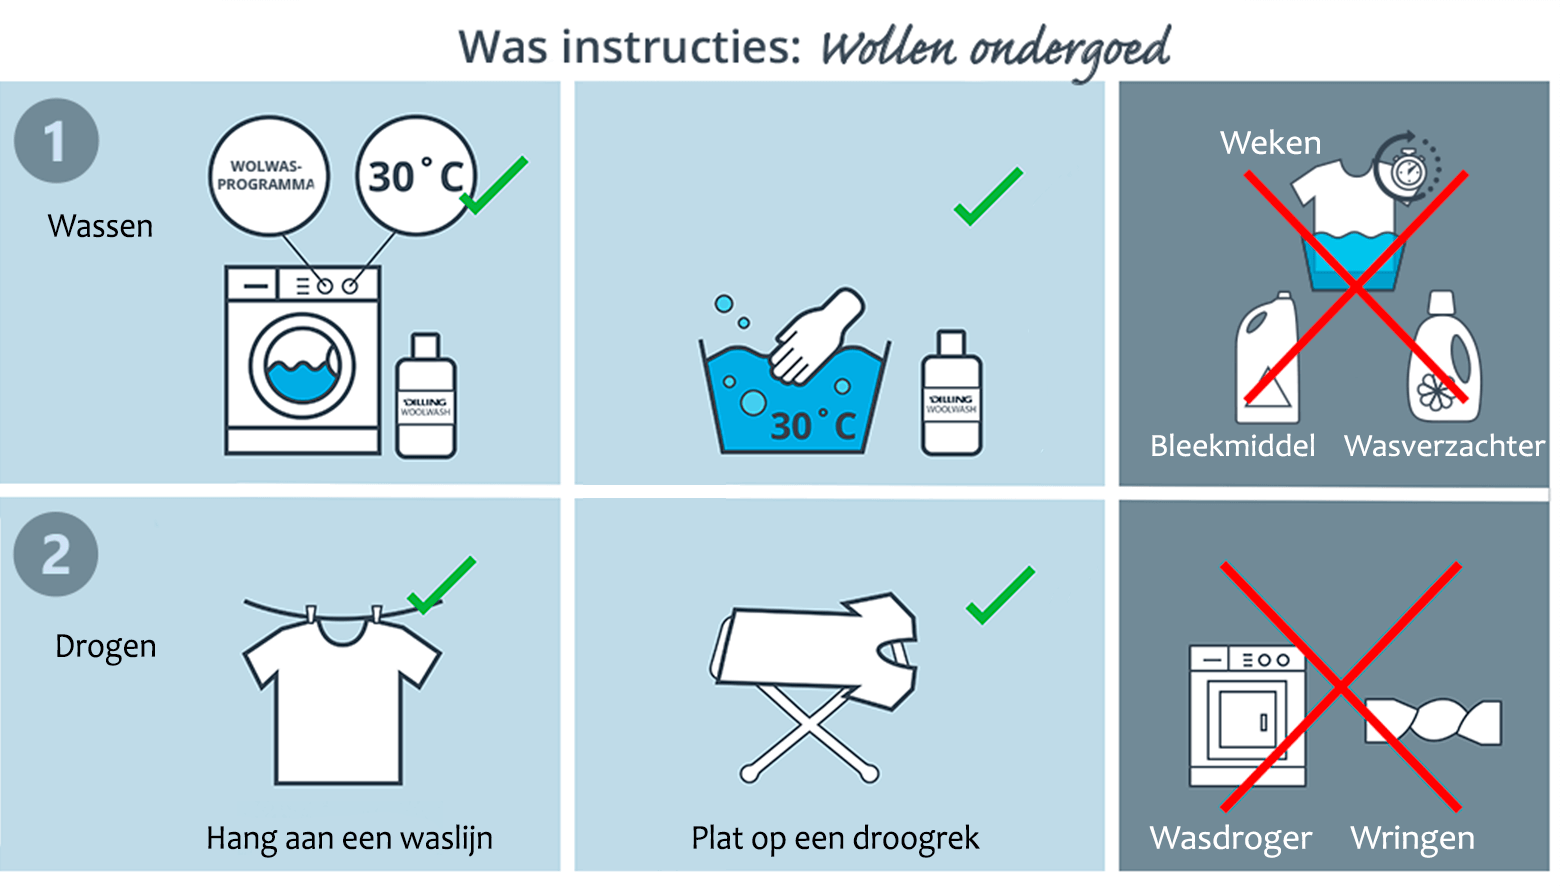 Was instructies wollen ondergoed